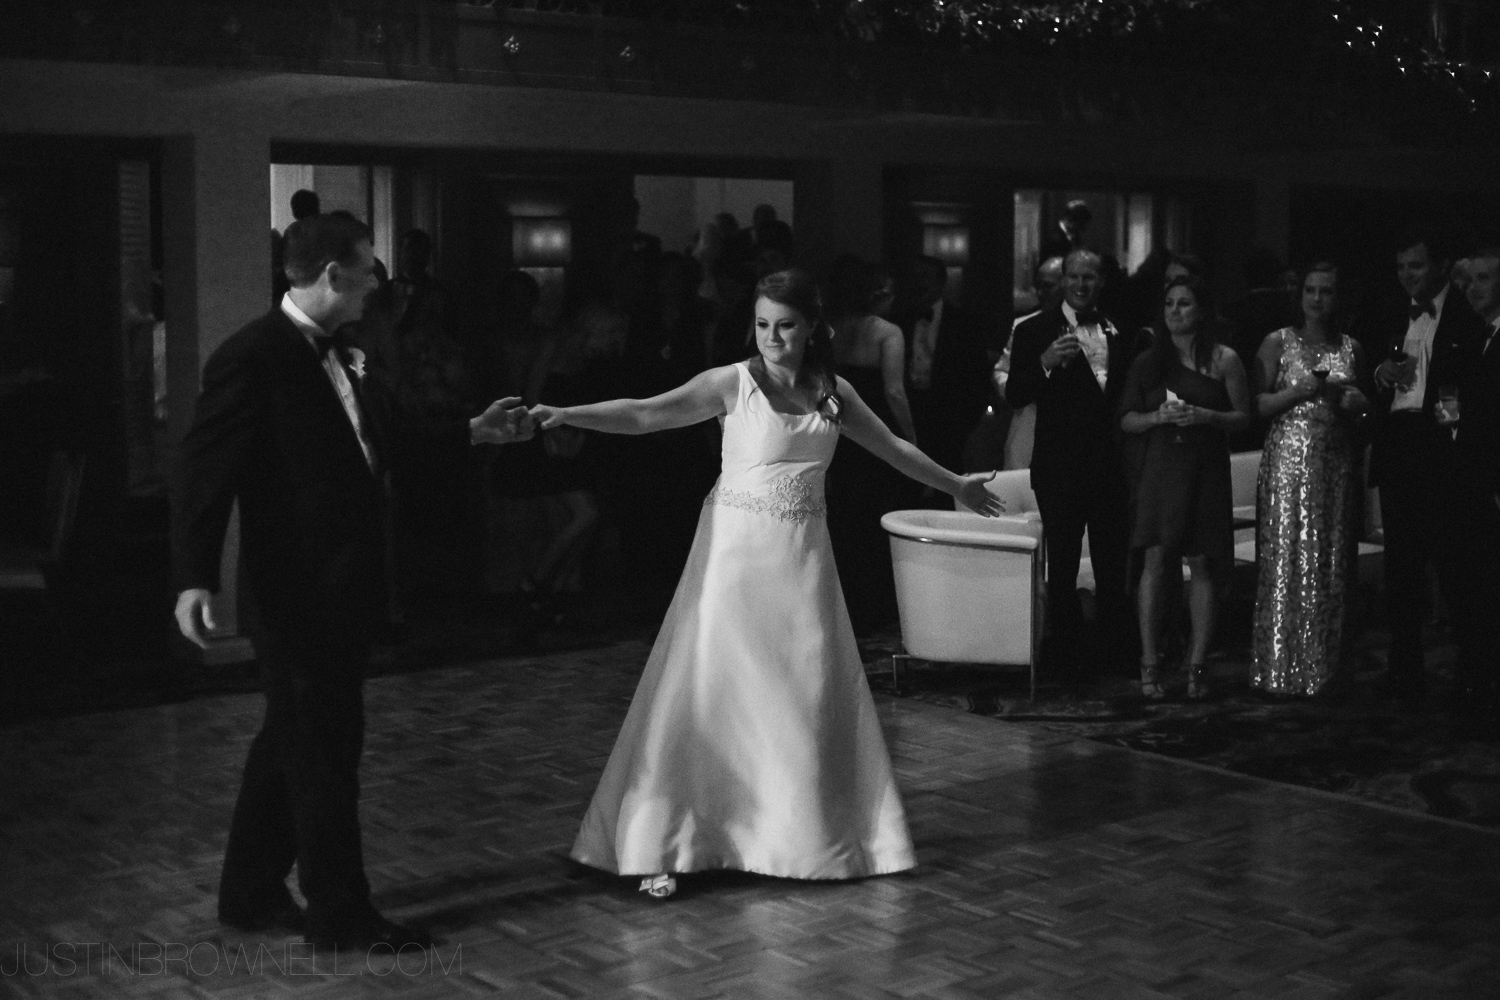 St. Anthony Hotel, San Antonio Wedding, Texas Wedding, Best Wedding Photographer, Creative Wedding Photographer, Bad Ass!